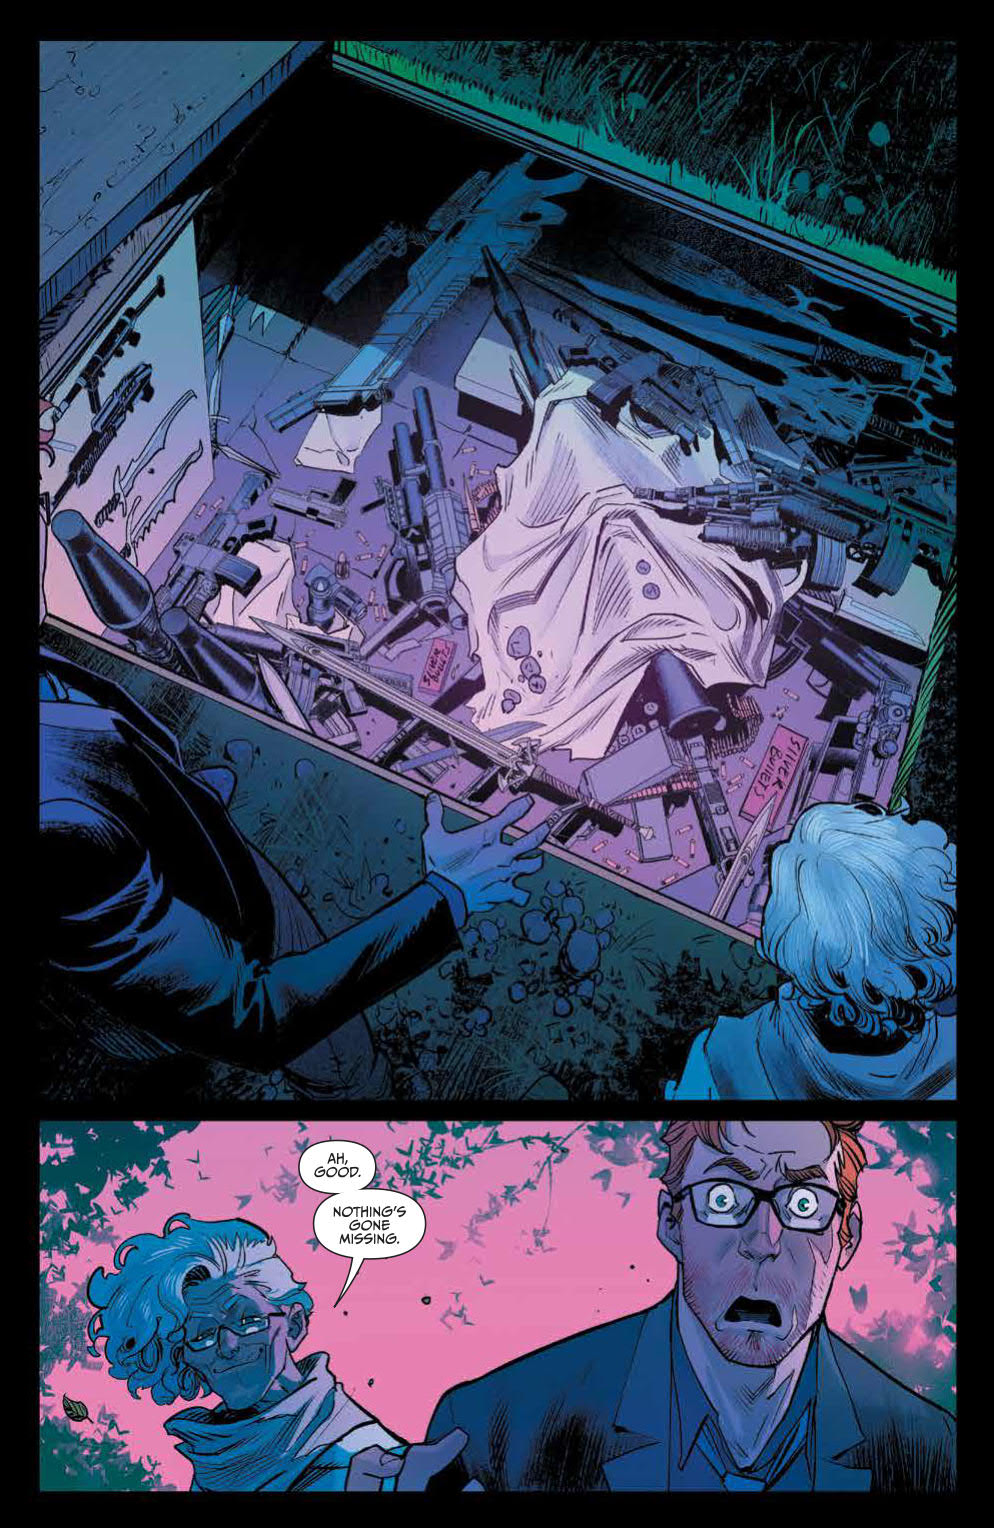 Once And Future #1: Page 15, Duncan Looking Pretty Shocked At His Grandmother's Arsenal of Weapons.